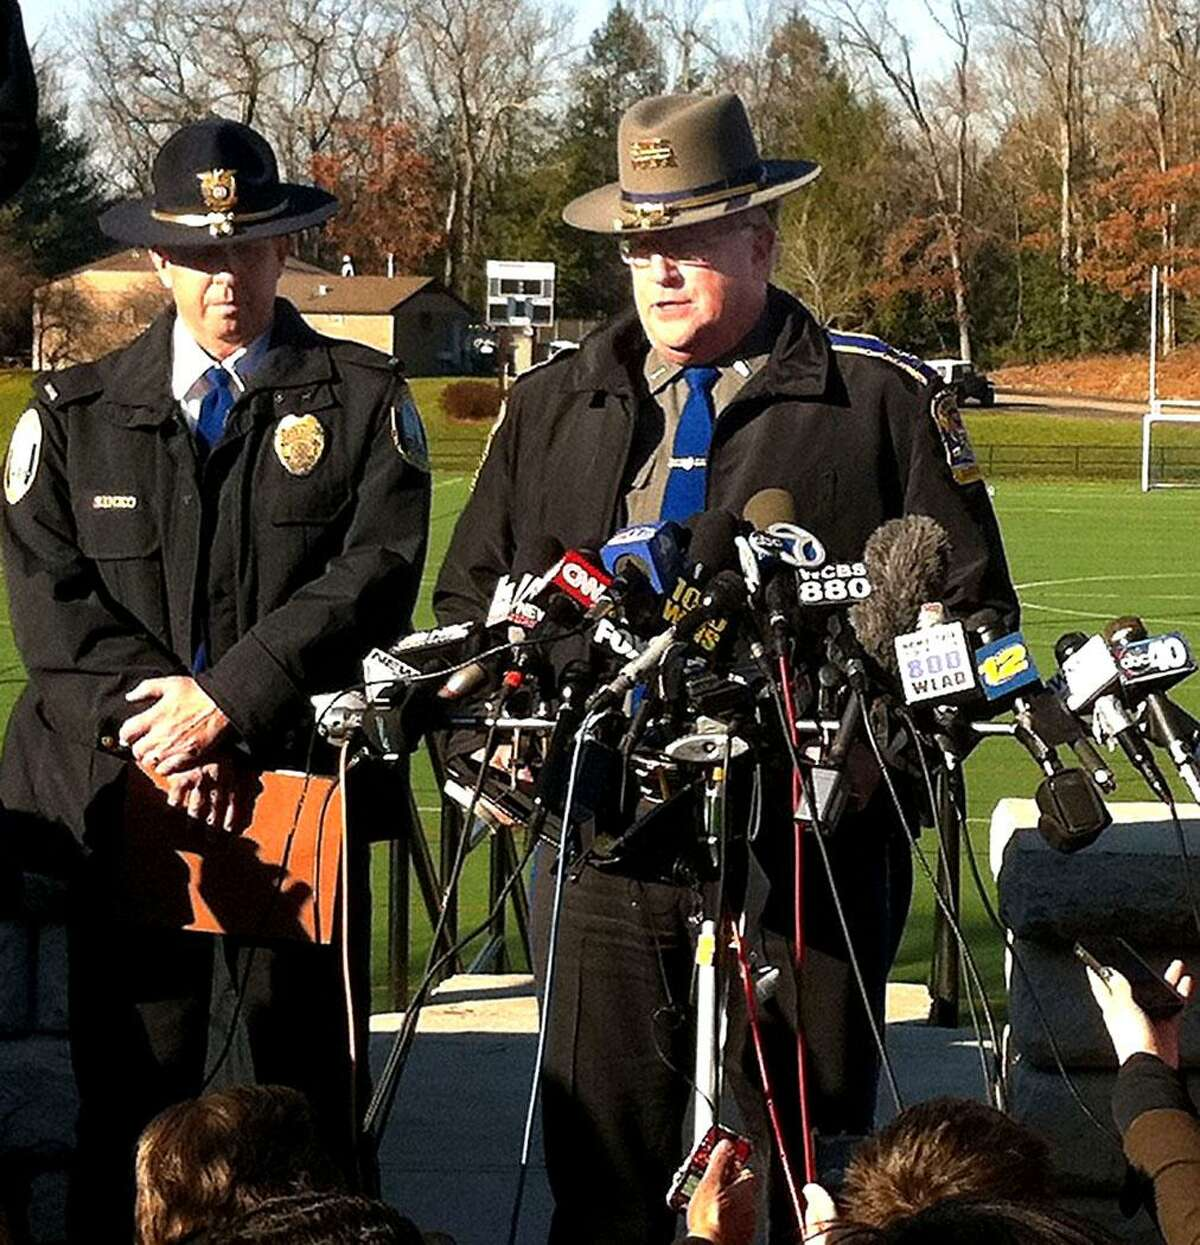 State Police spokesman Lt. J. Paul Vance speaks about shootings at the Sandy Hook Elementary School Friday, Dec. 14, 2012.